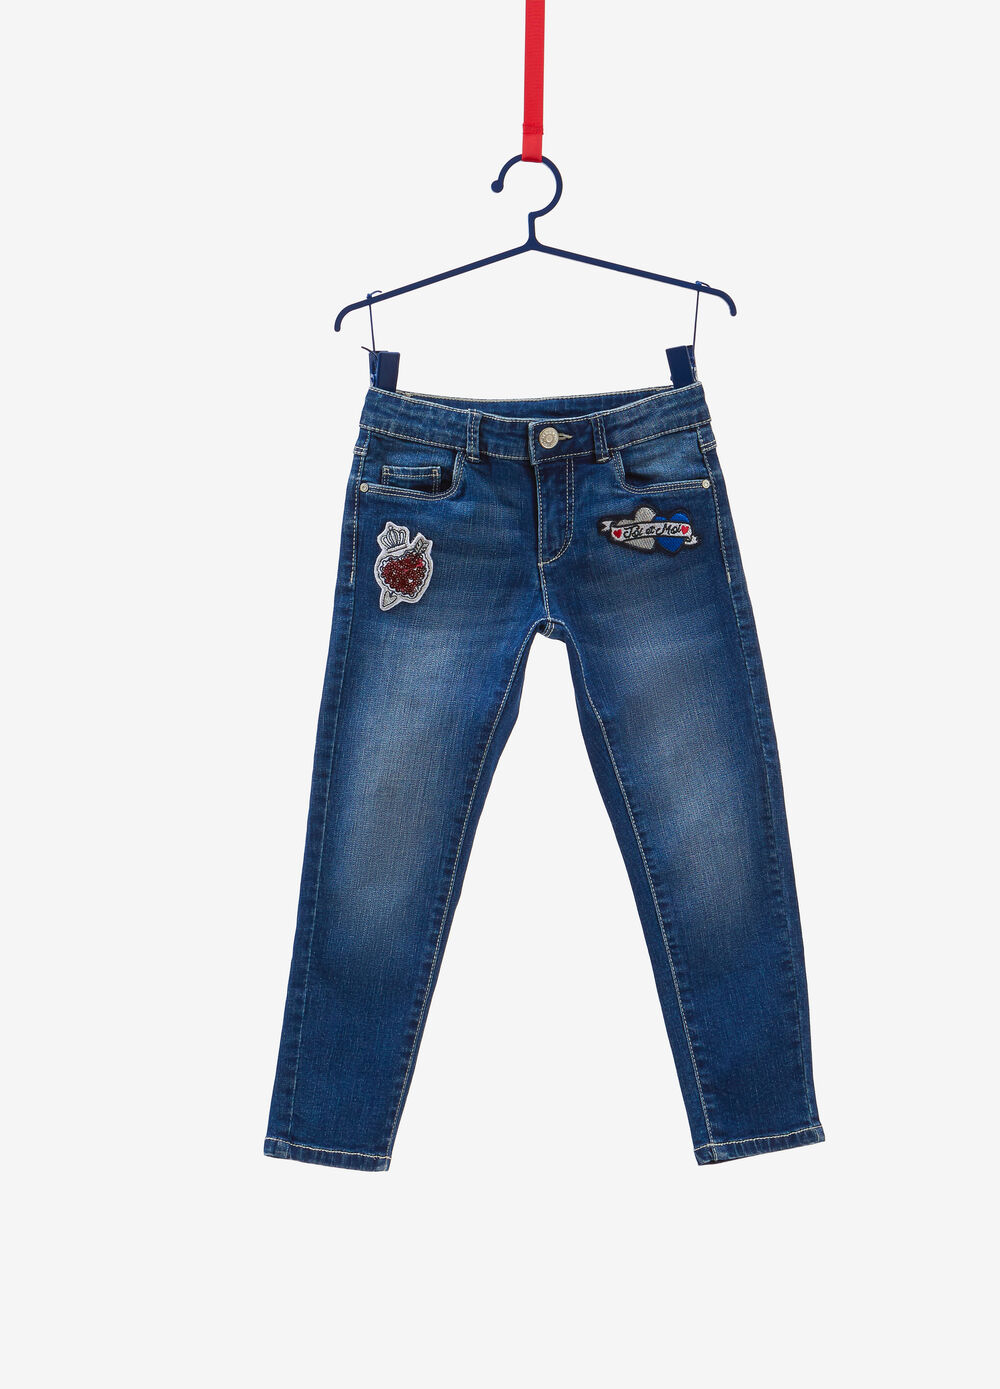 Skinny-fit faded jeans with patches